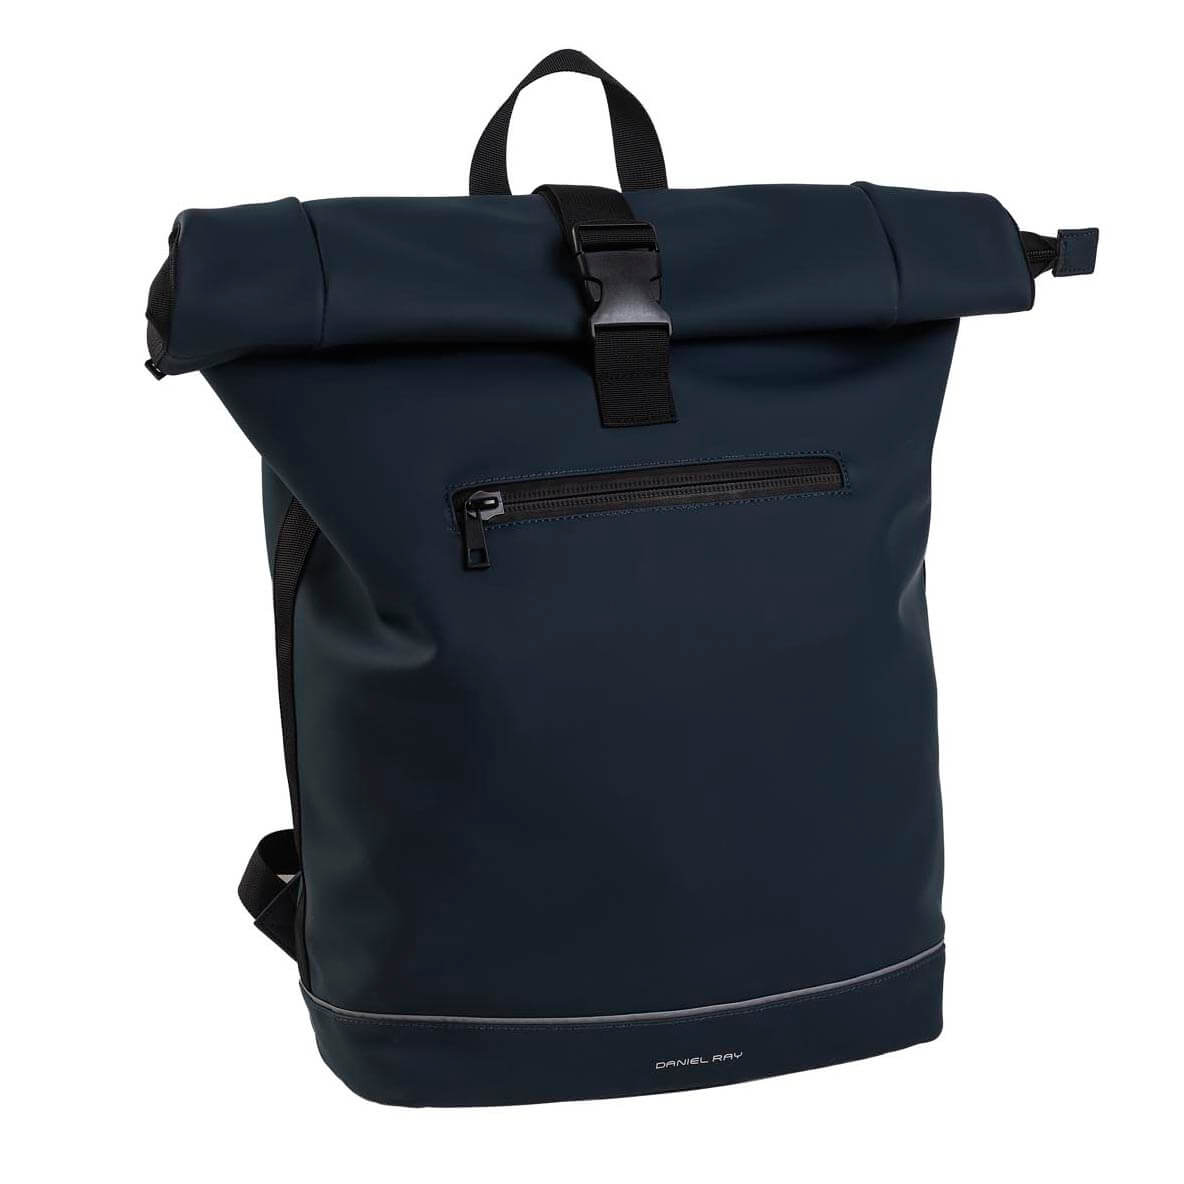 Daniel Ray Waterproof Rolltop Rugzak 15.6'' Highlands Navy Blauw